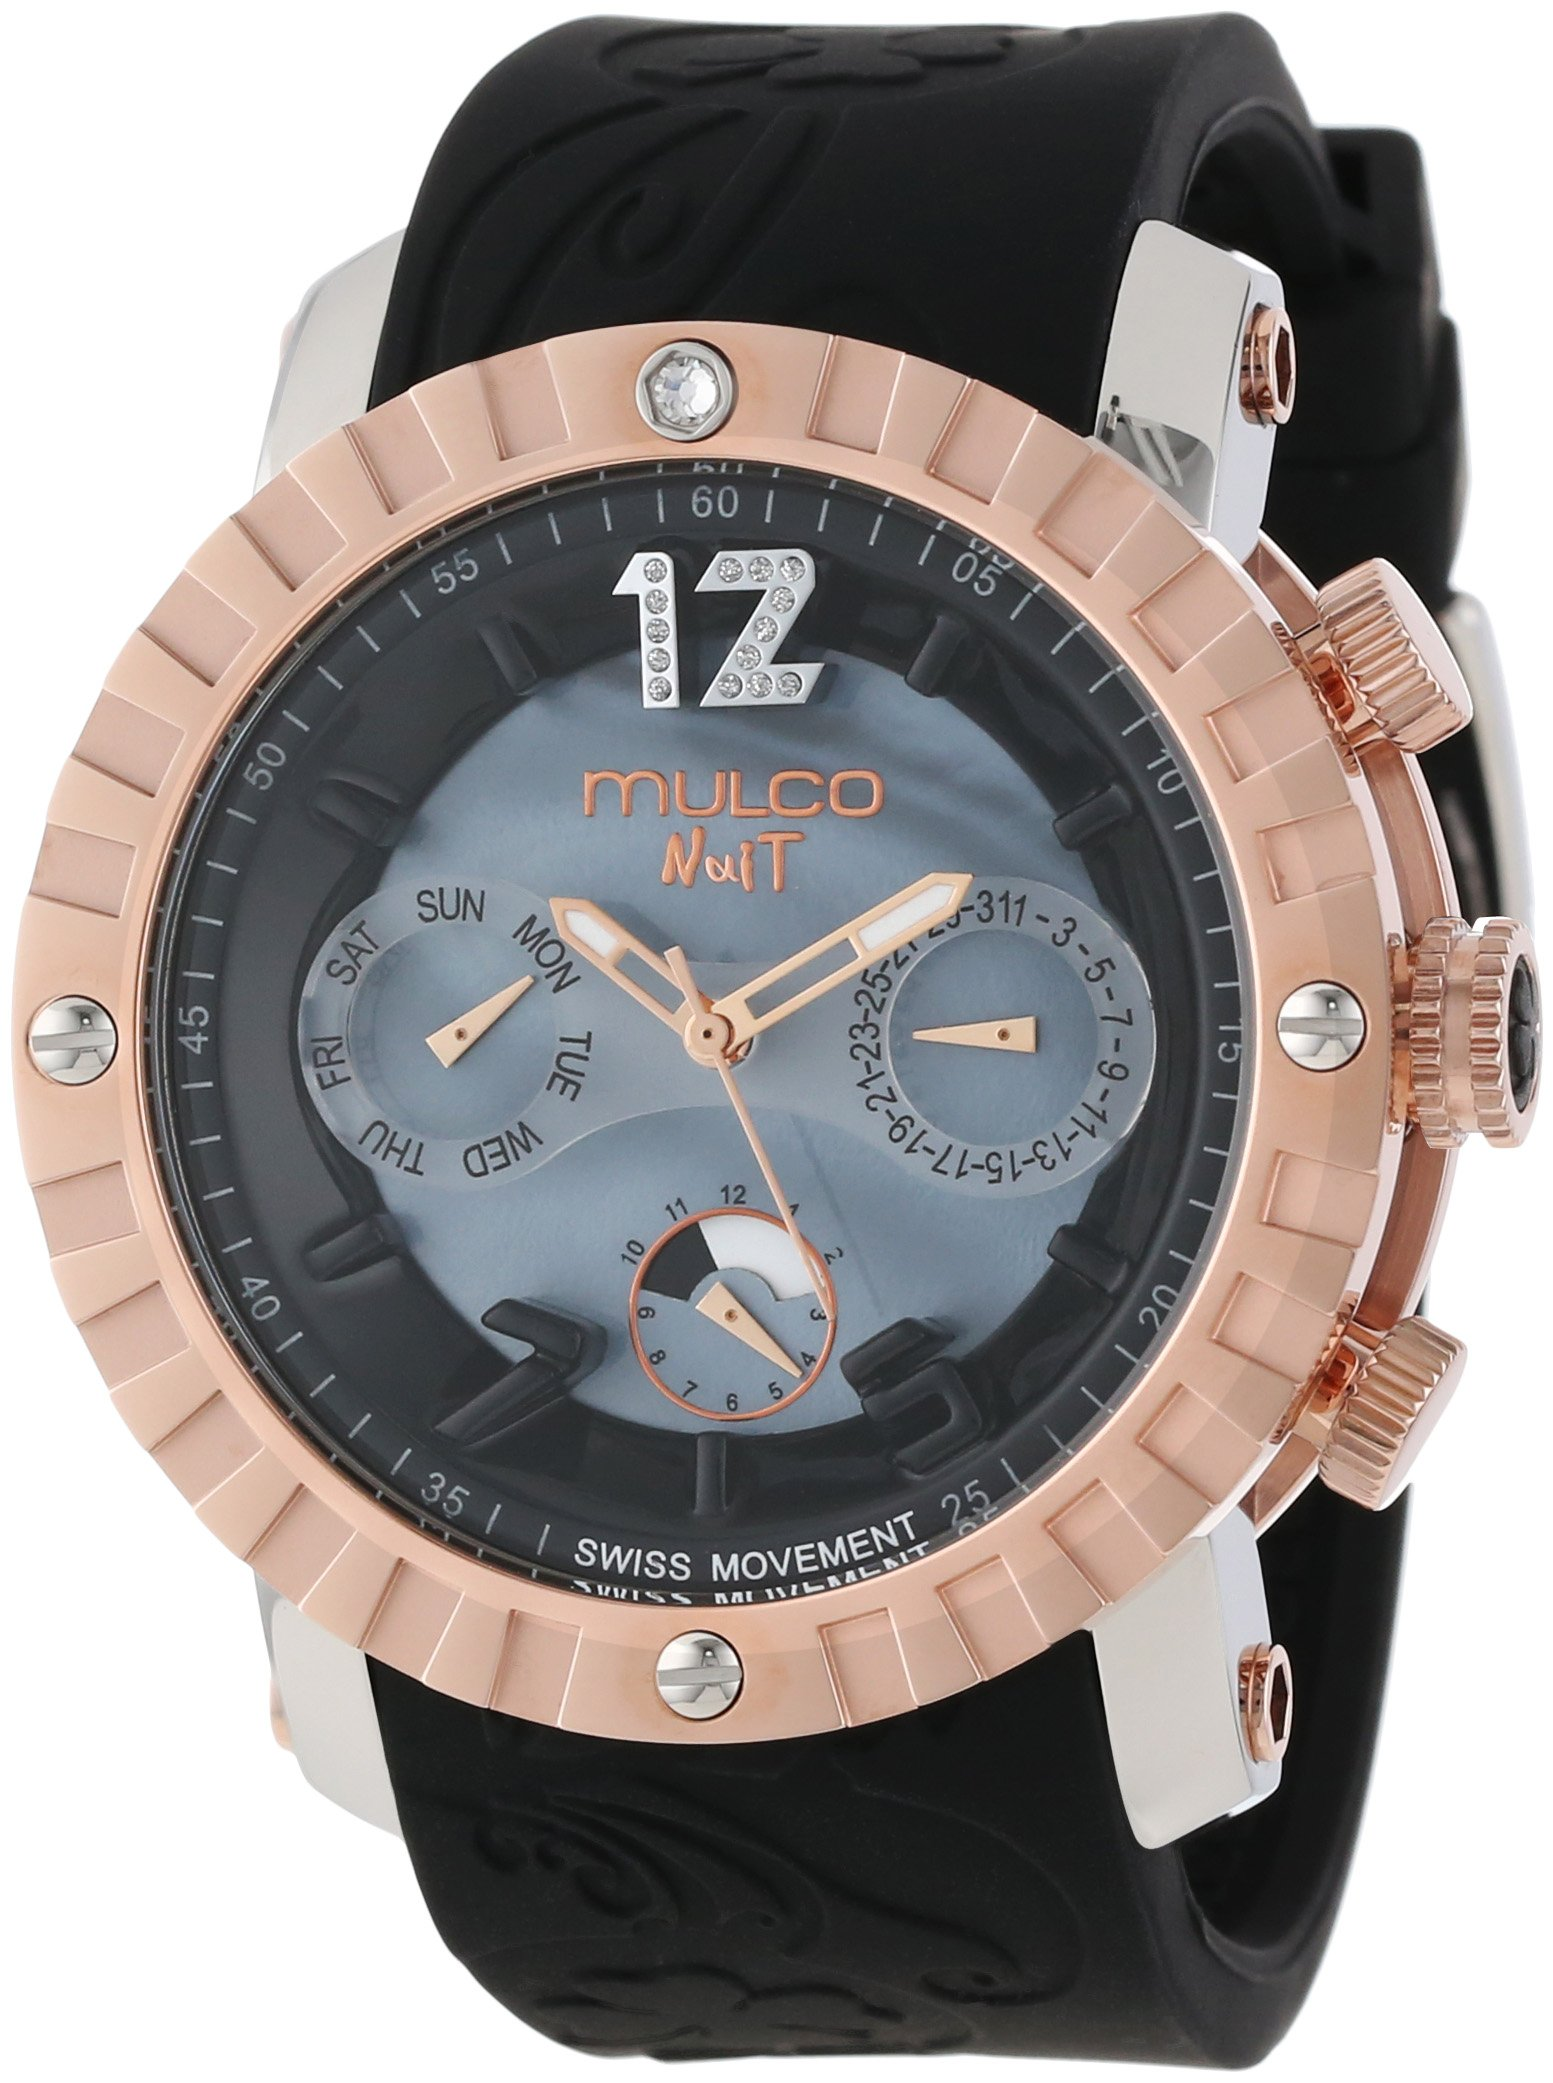 MULCO Unisex MW5-1876-023 Analog Chronograph Swiss Watch by MULCO